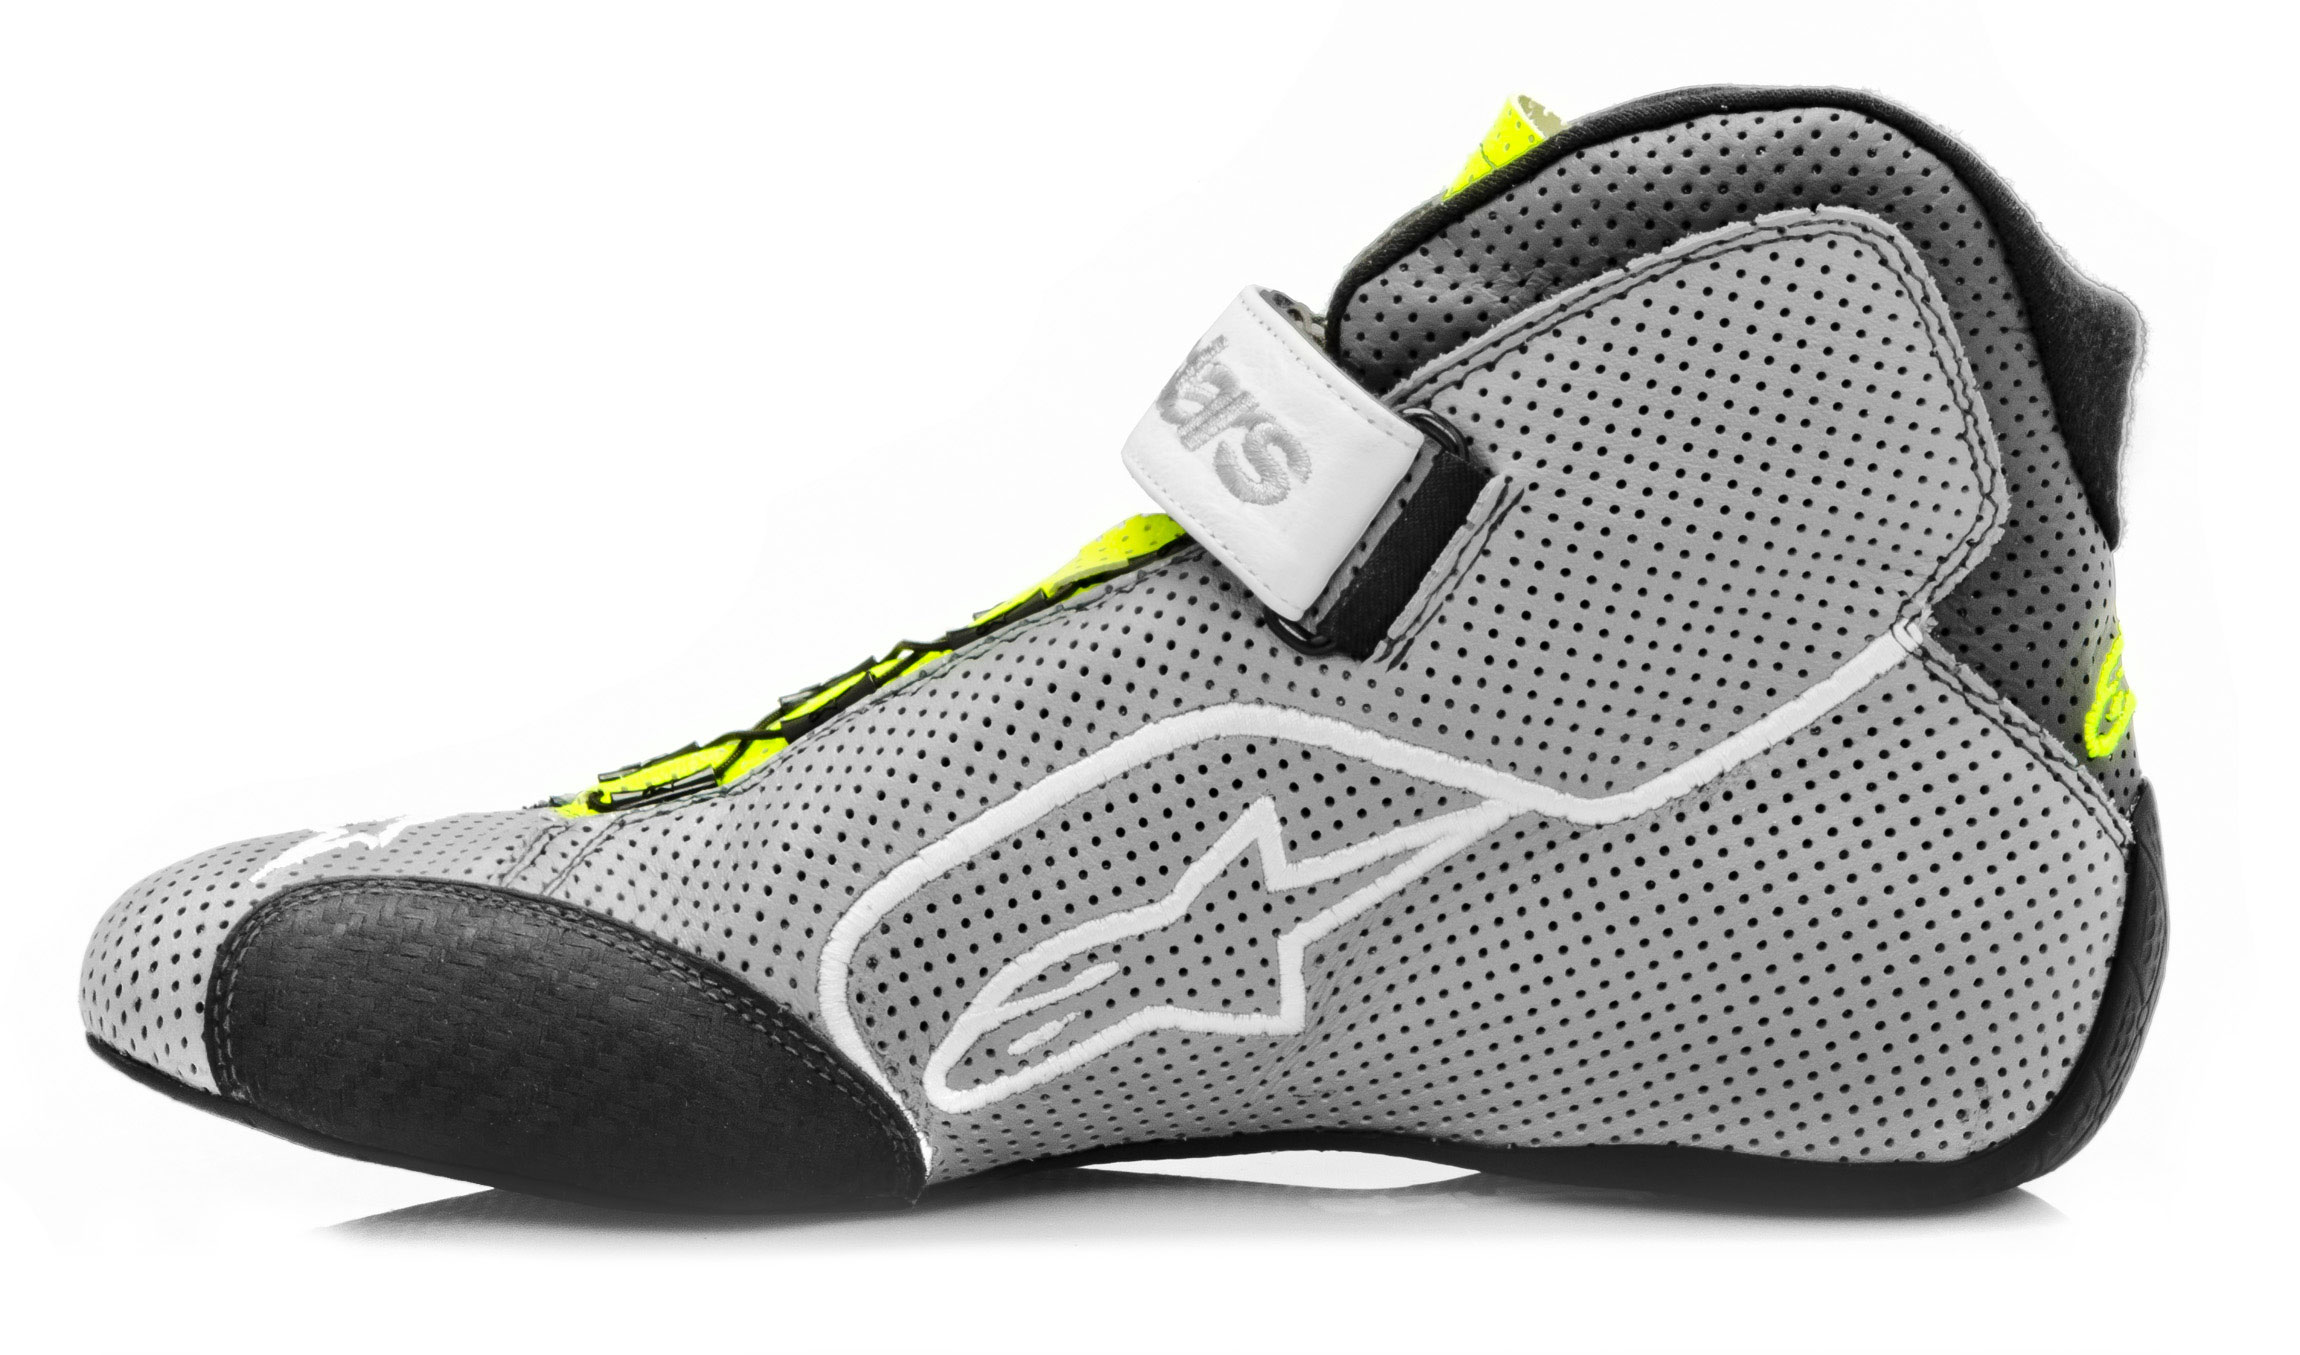 tech-1-z-gray-yellow-fluo-rot2